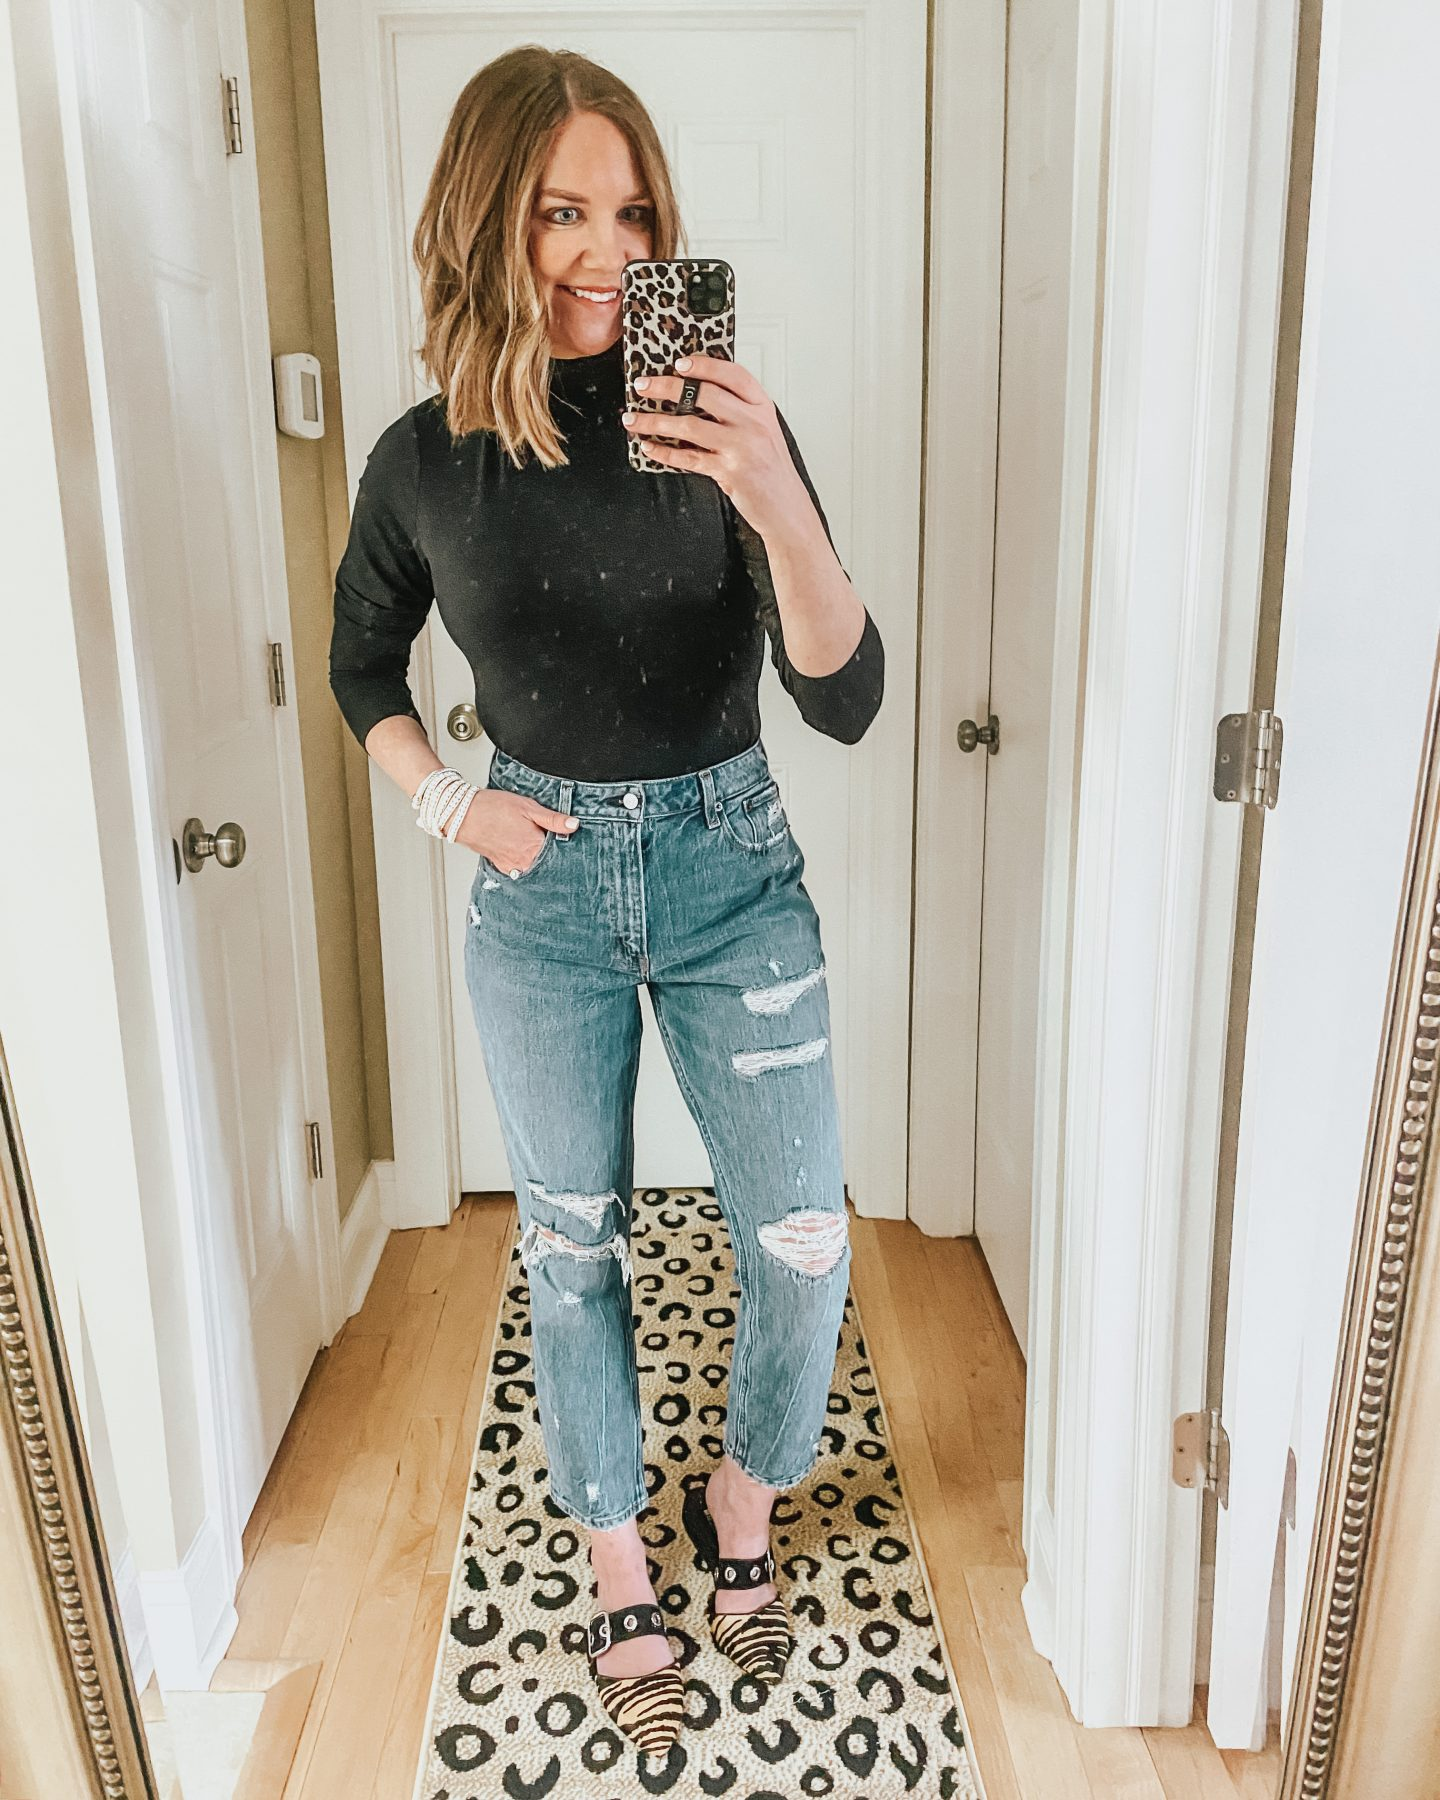 styling-mom-jeans-with-a-bodysuit